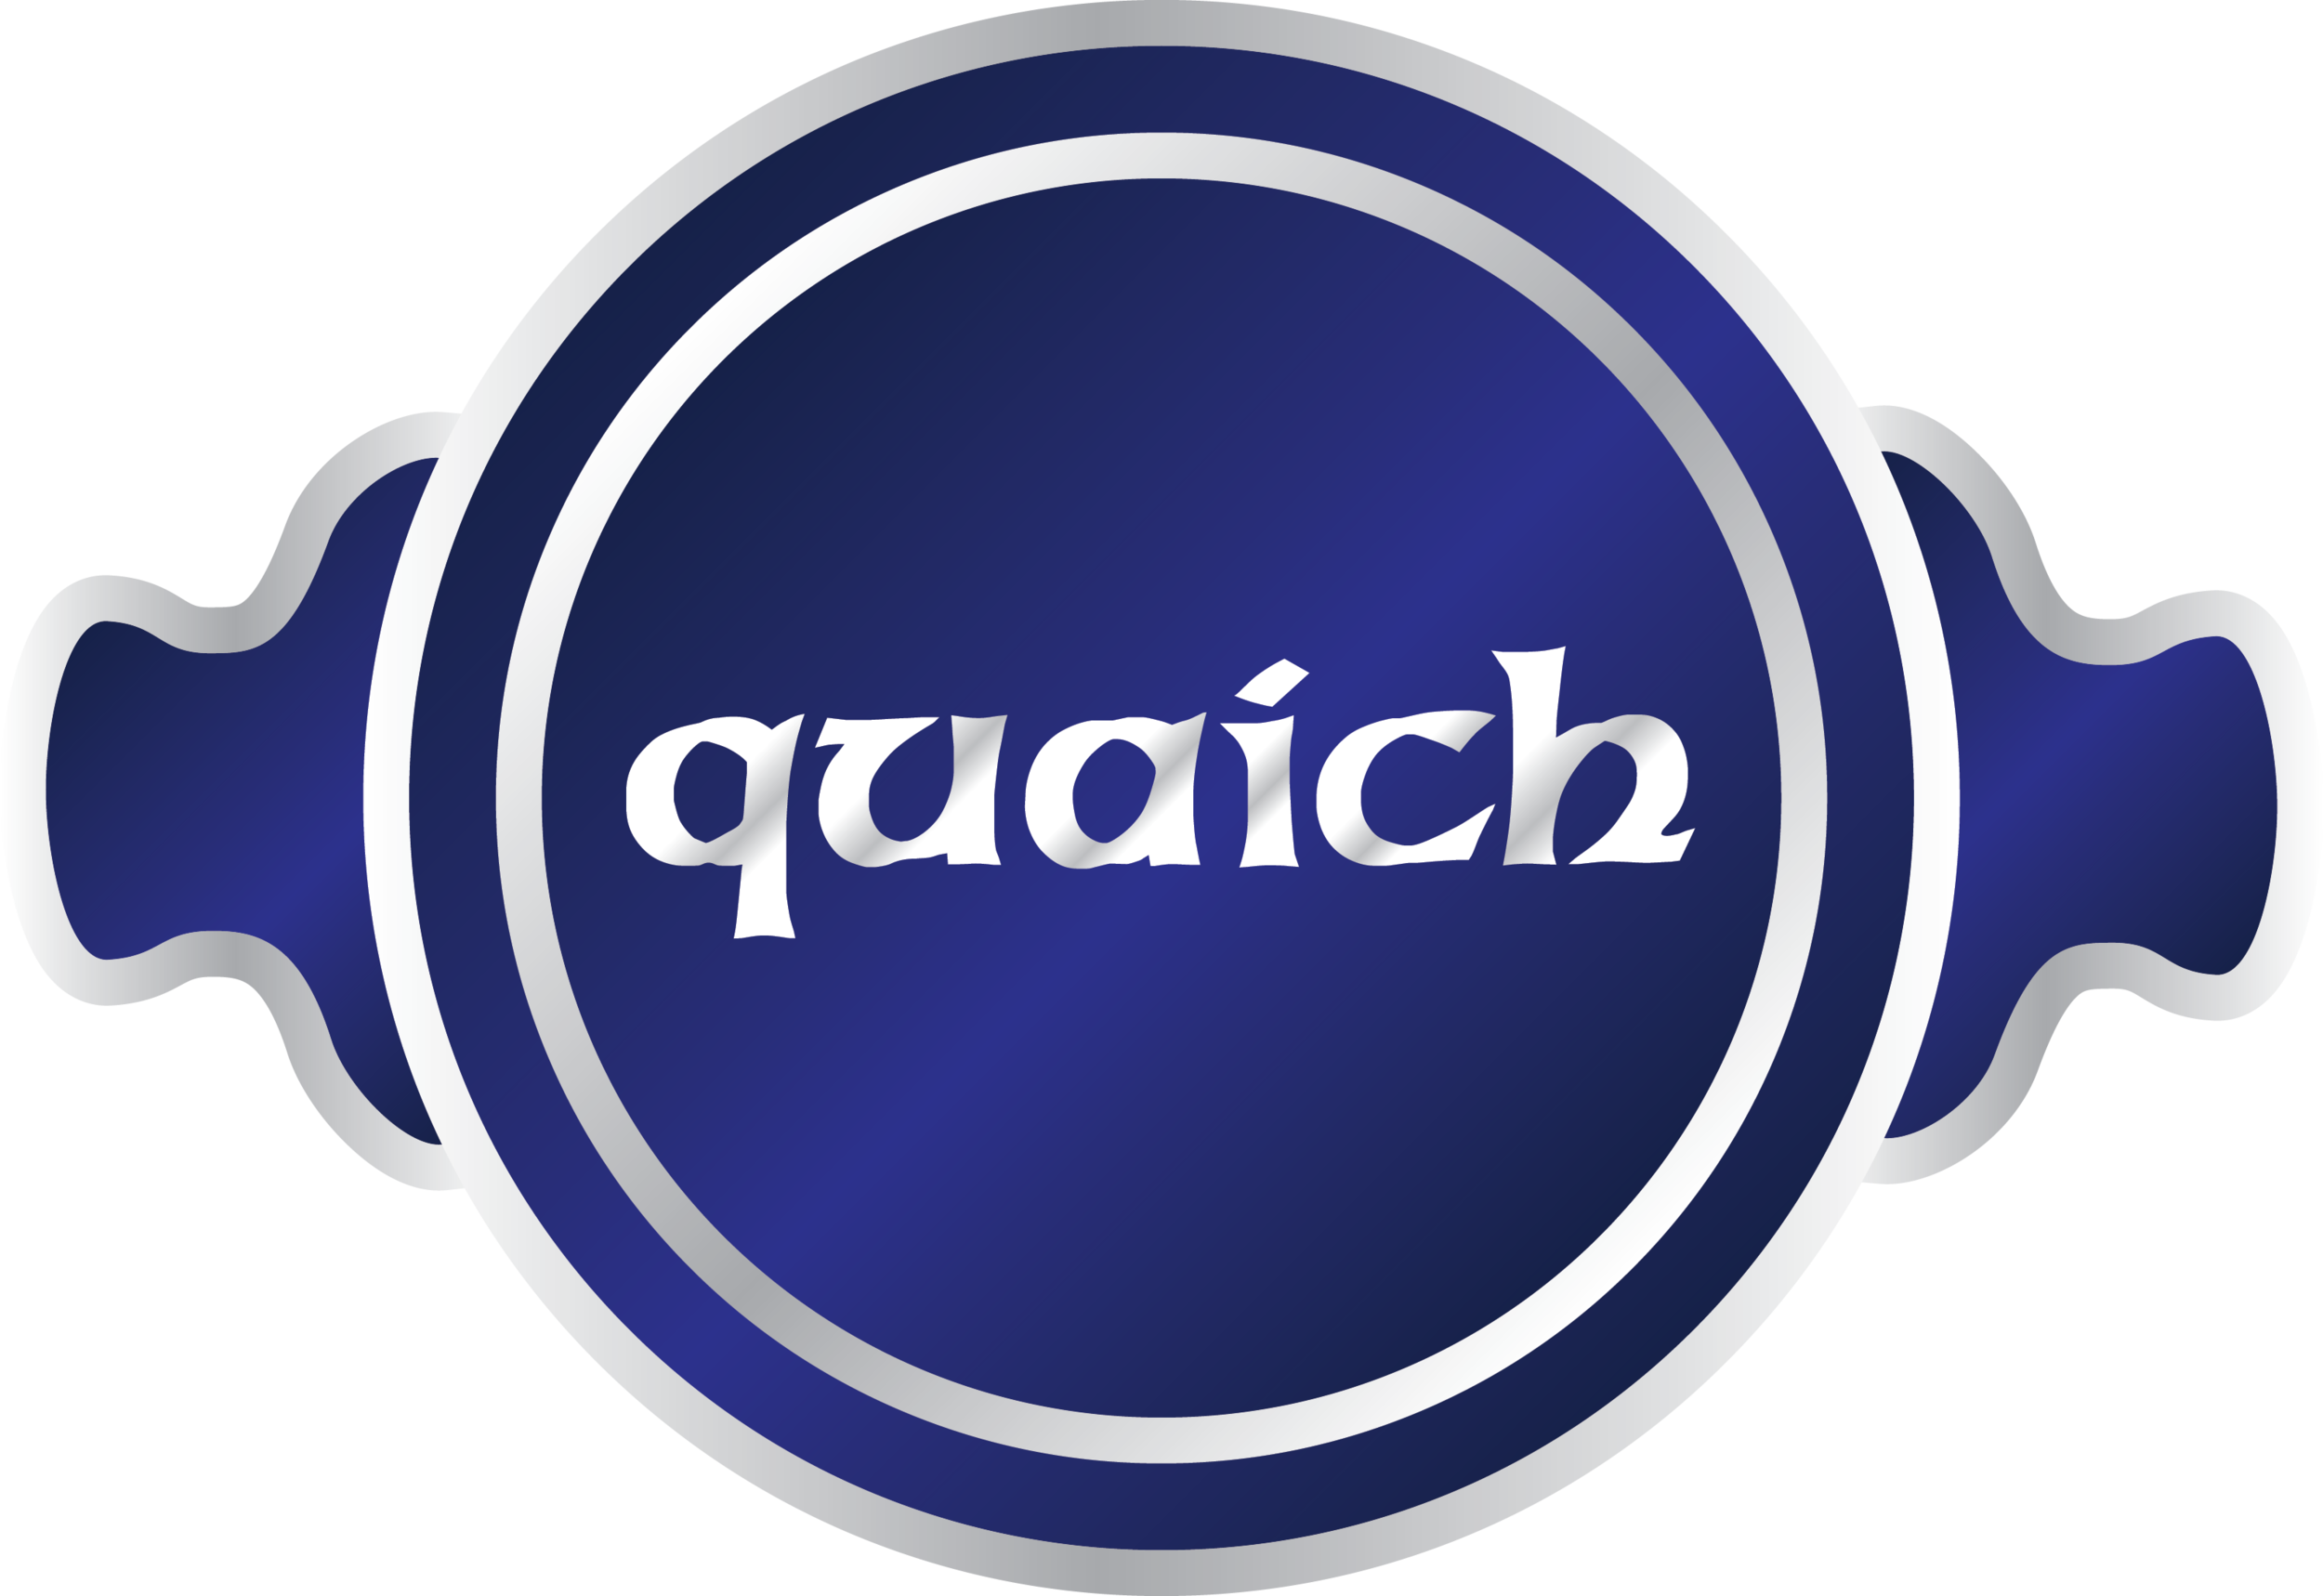 The Quaich is a traditional Scottish bowl characterized by two handles. I used the name and the shape of the Quaich to inspire the logo.This bowl, originally used for drinking scotch is now largely used for trophies and ceremonial awards, speaks to Scottish heritage and to quality.